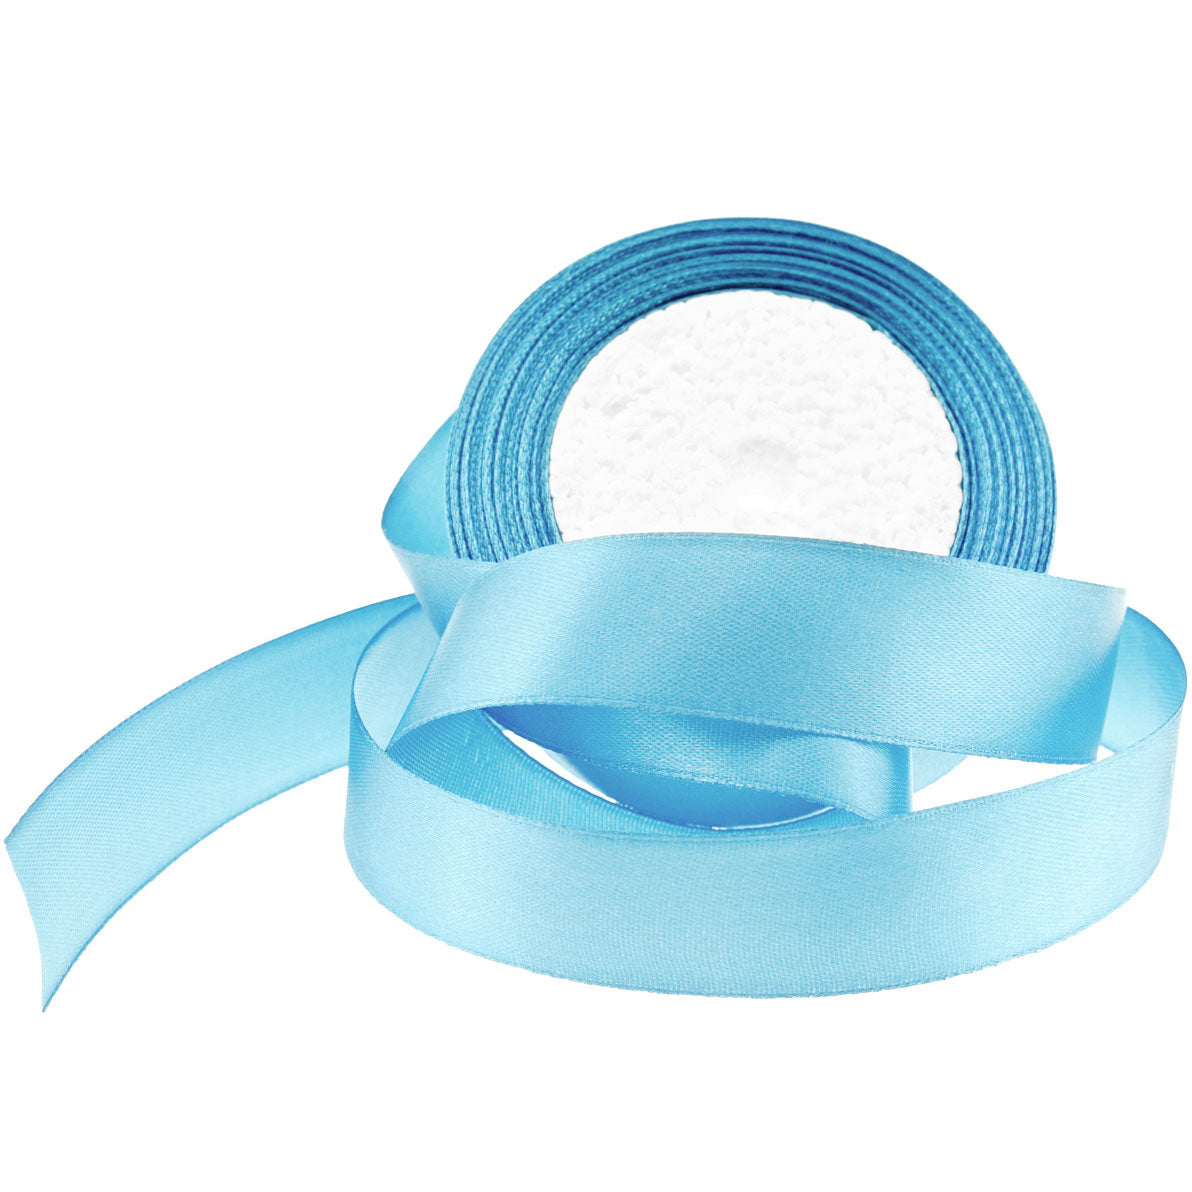 25mm Light Blue Single Sided Satin Ribbon